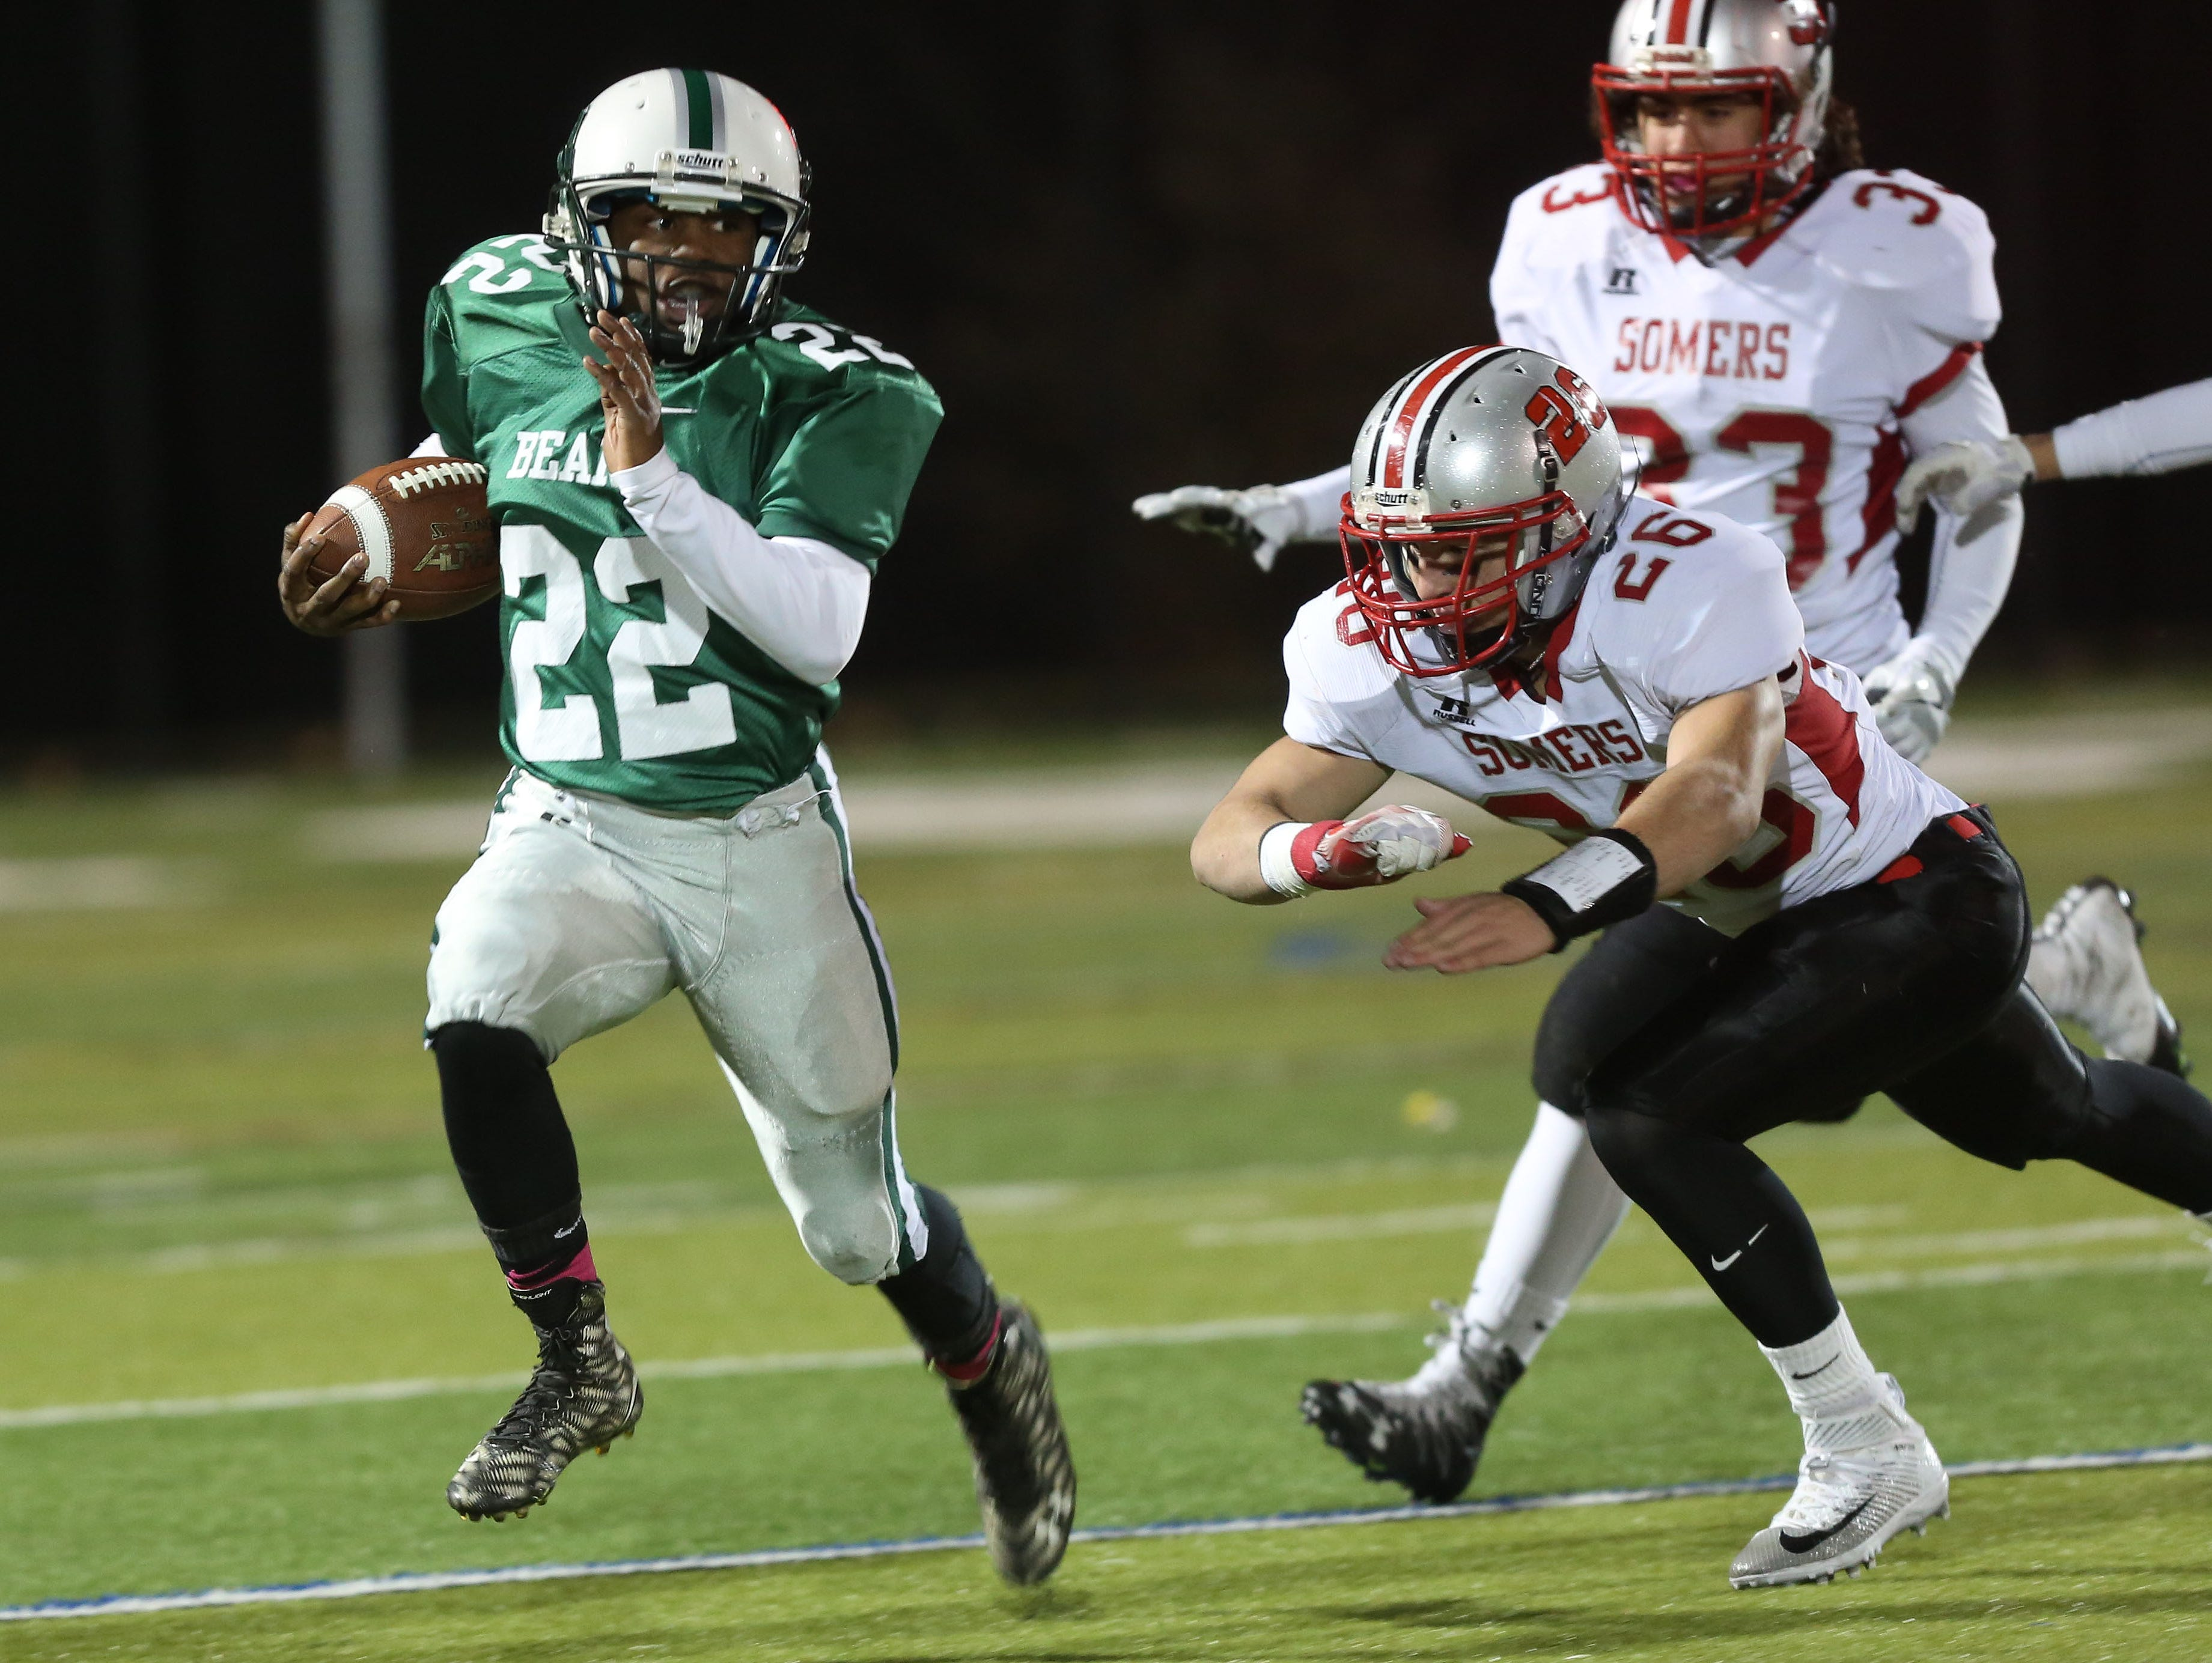 Brewster's Henry Terry (22) tries to get away from Somers Antonio Vieira (26) on first half run during the Section 1 Class A semifinals at Brewster High School Oct. 28, 2016.